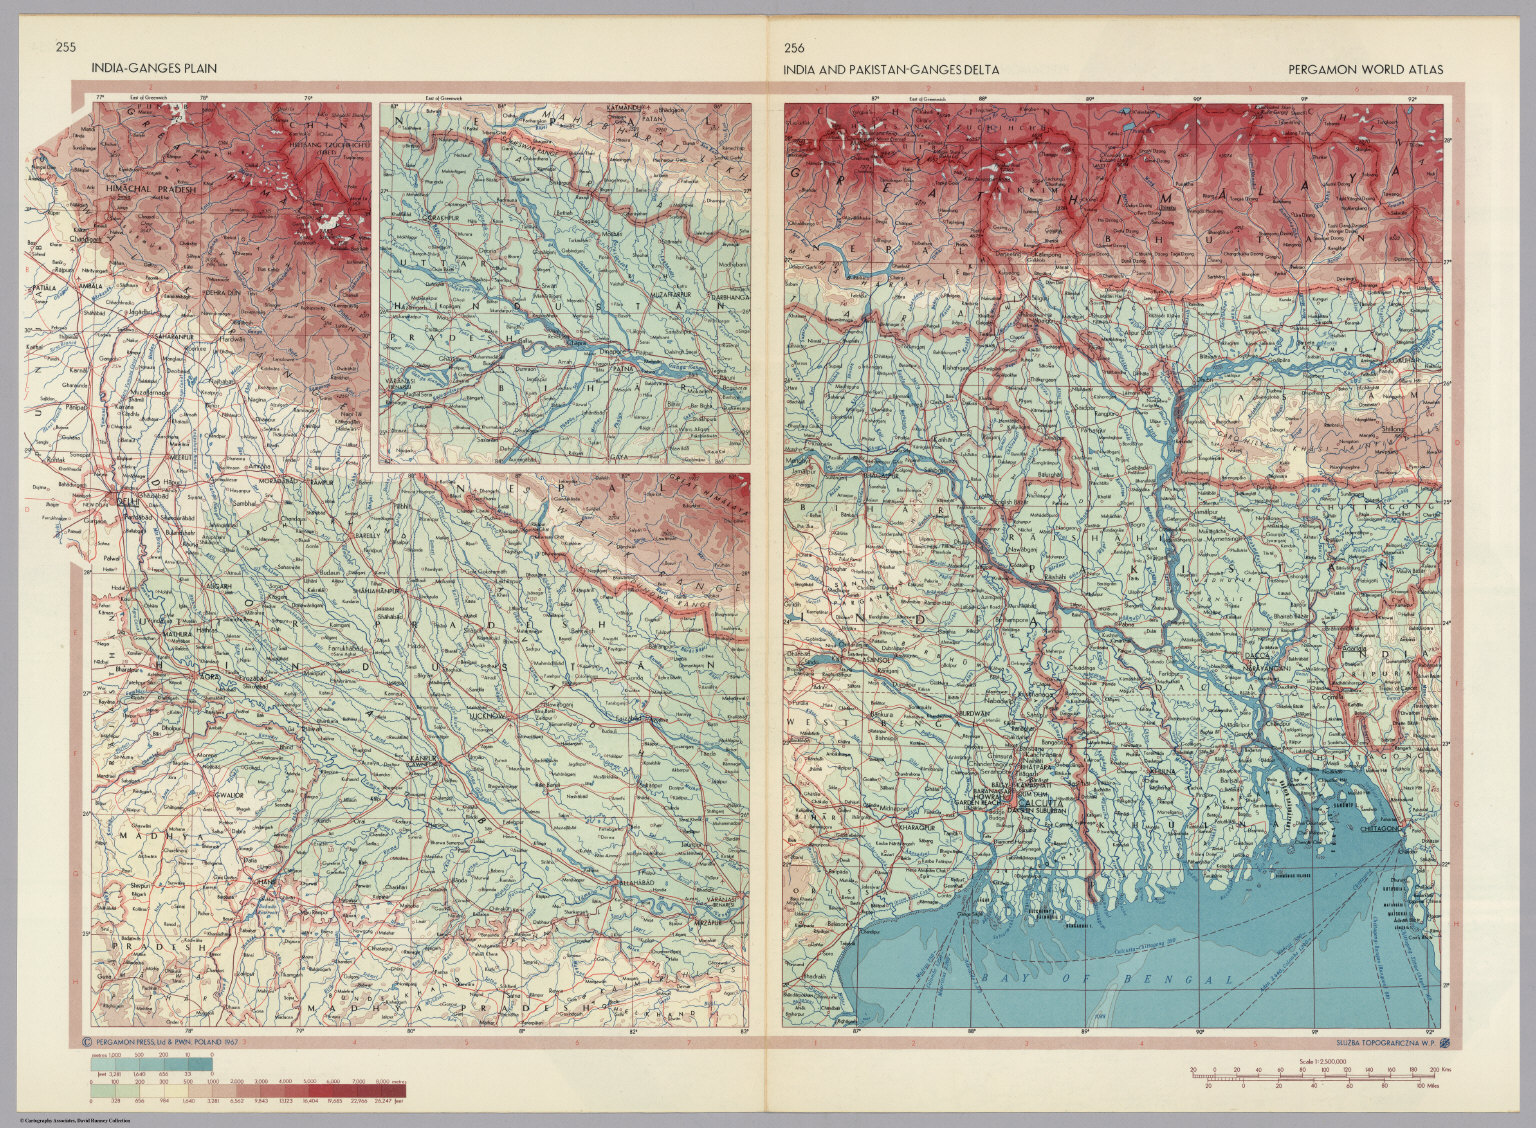 India ganges plain inset continuation of main map india and india ganges plain inset continuation of main map india and pakistan bangladesh gumiabroncs Gallery